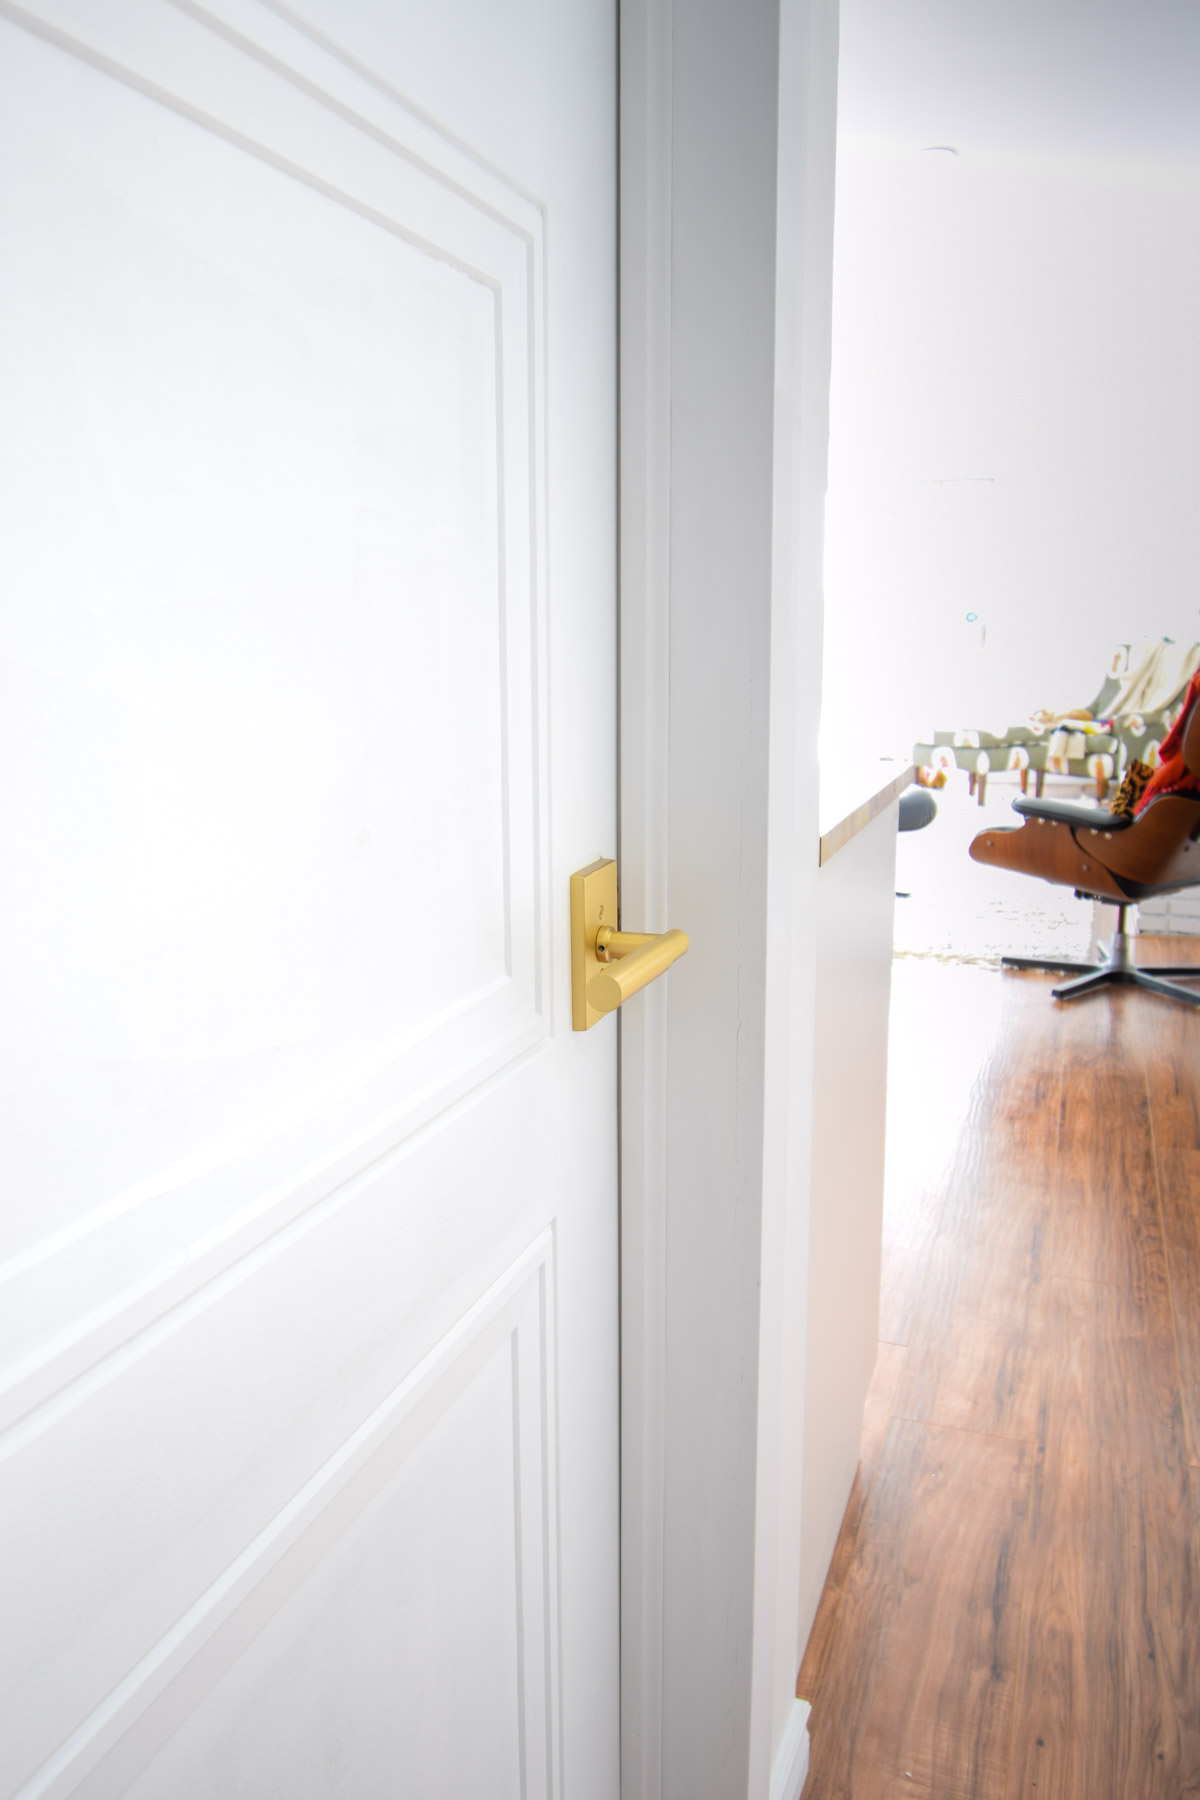 Picking interior door handles - things to consider, things to avoid, and why we chose Emtek for ours. Read on through!